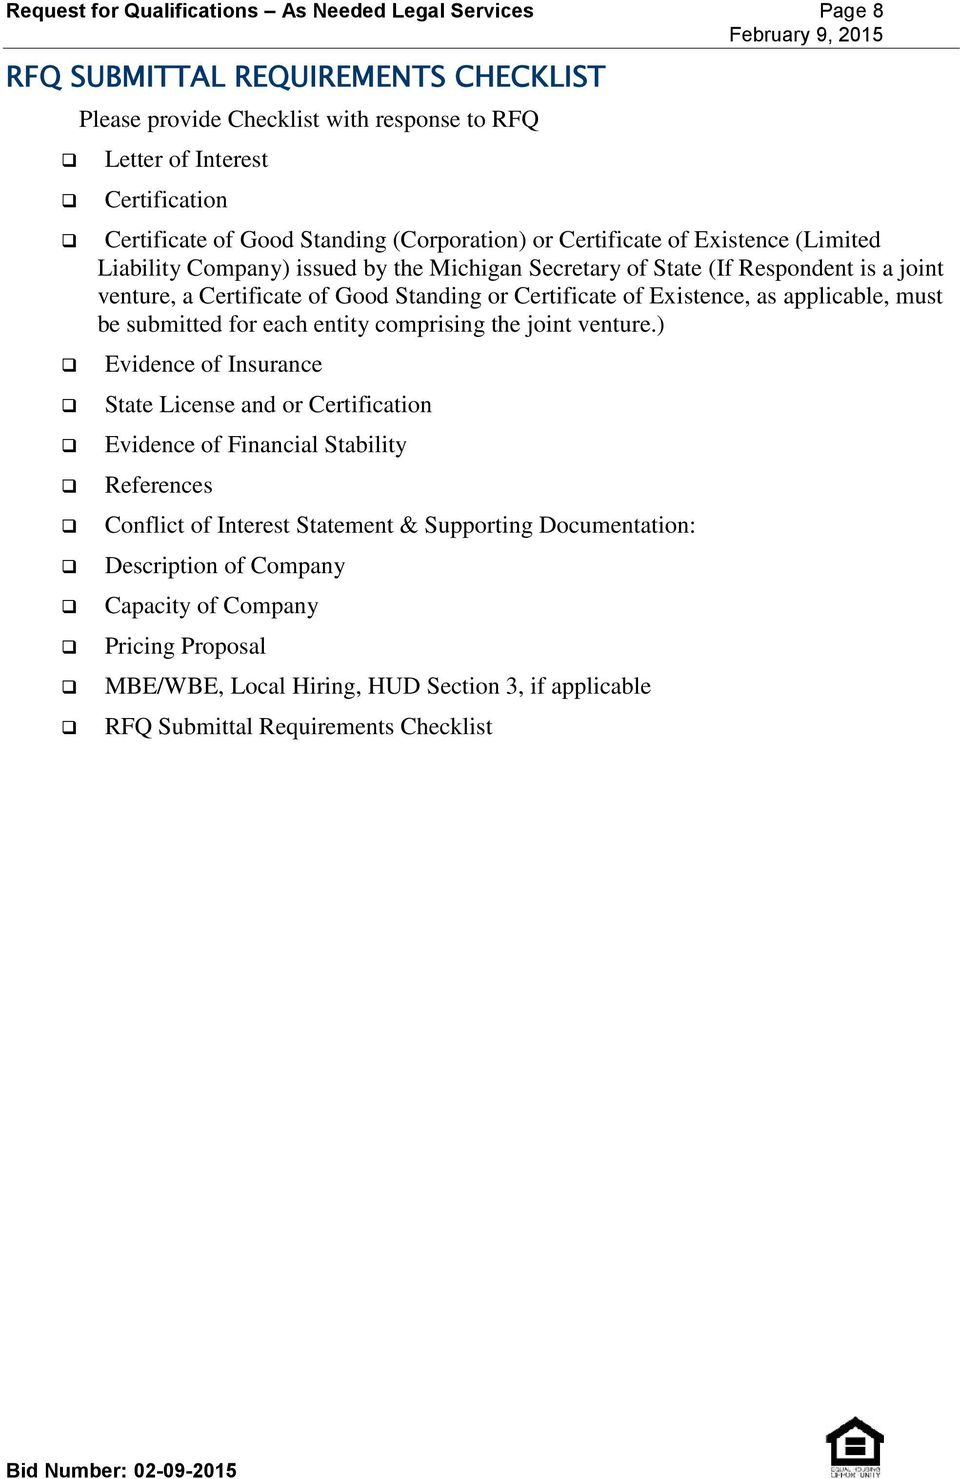 Detroit Land Bank Authority Request For Qualifications As Needed